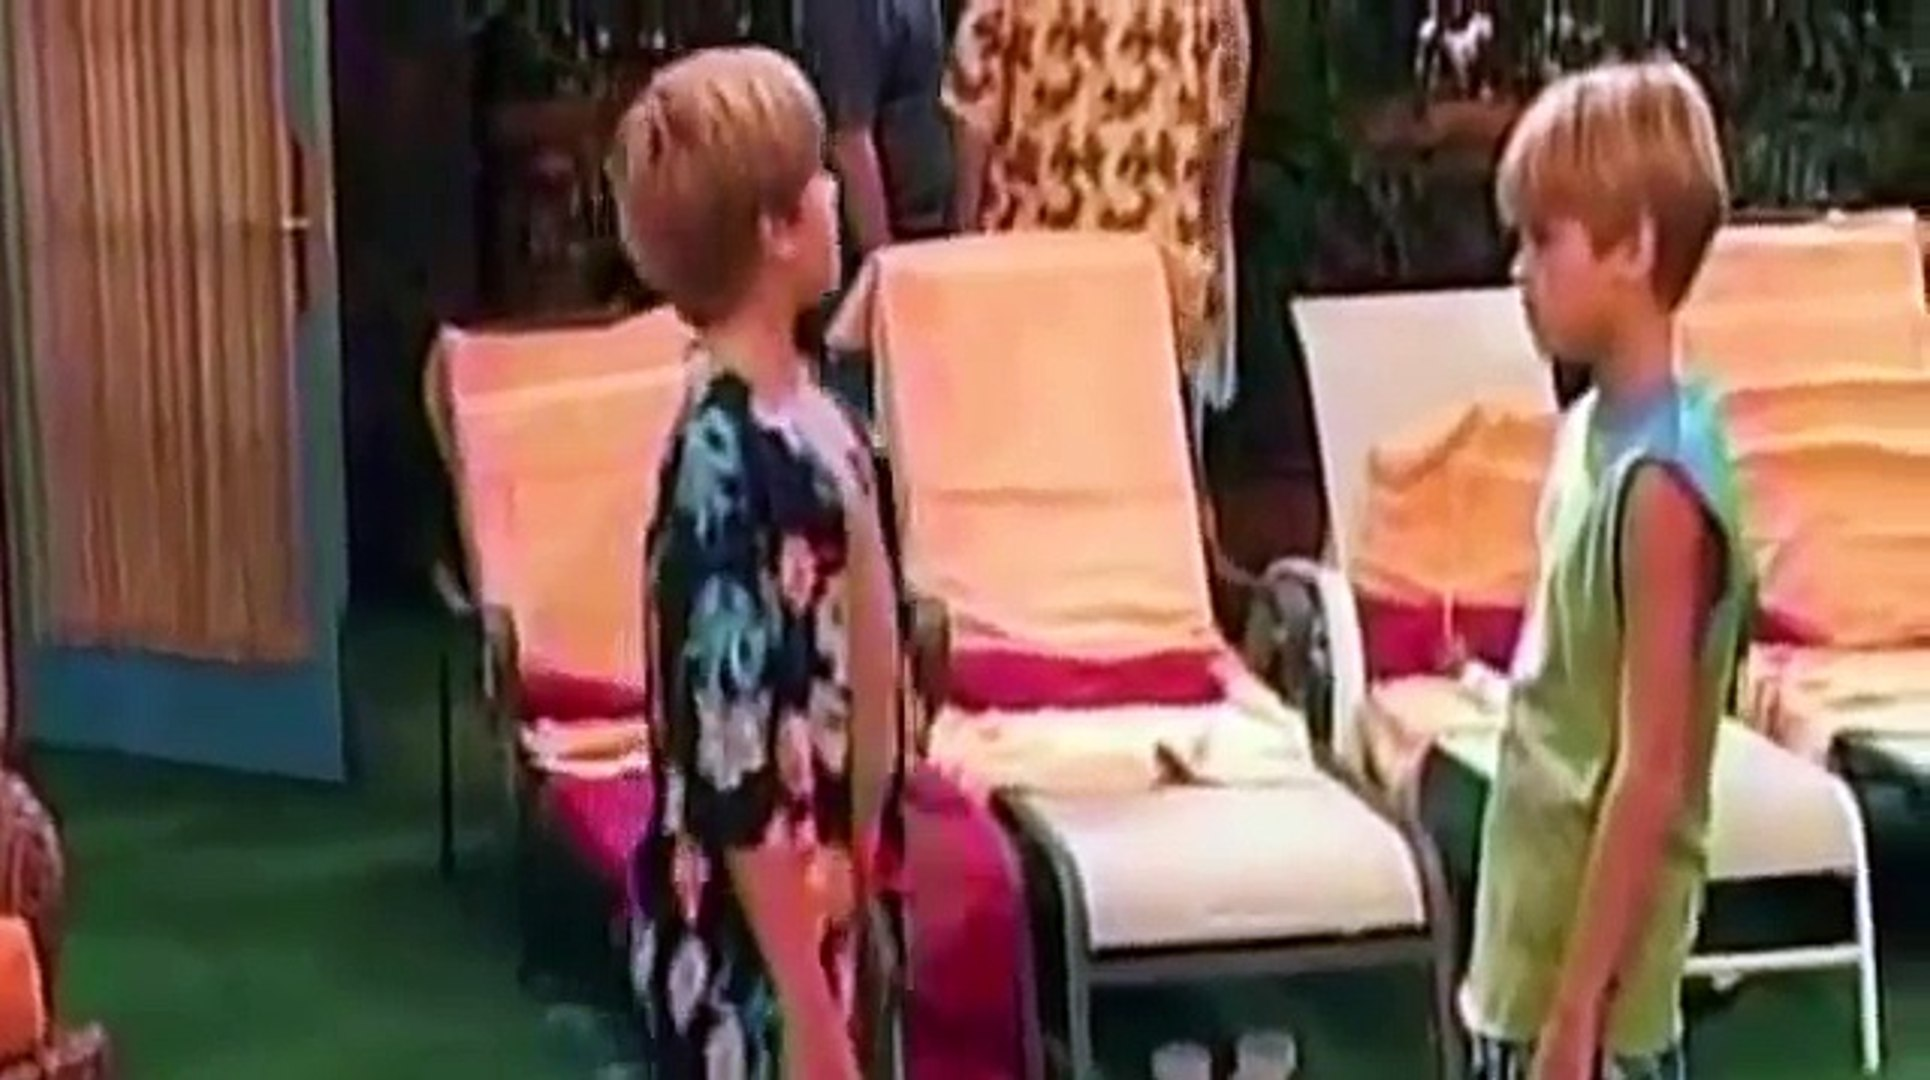 The Suite Life of Zack and Cody Season 1 Episode 1